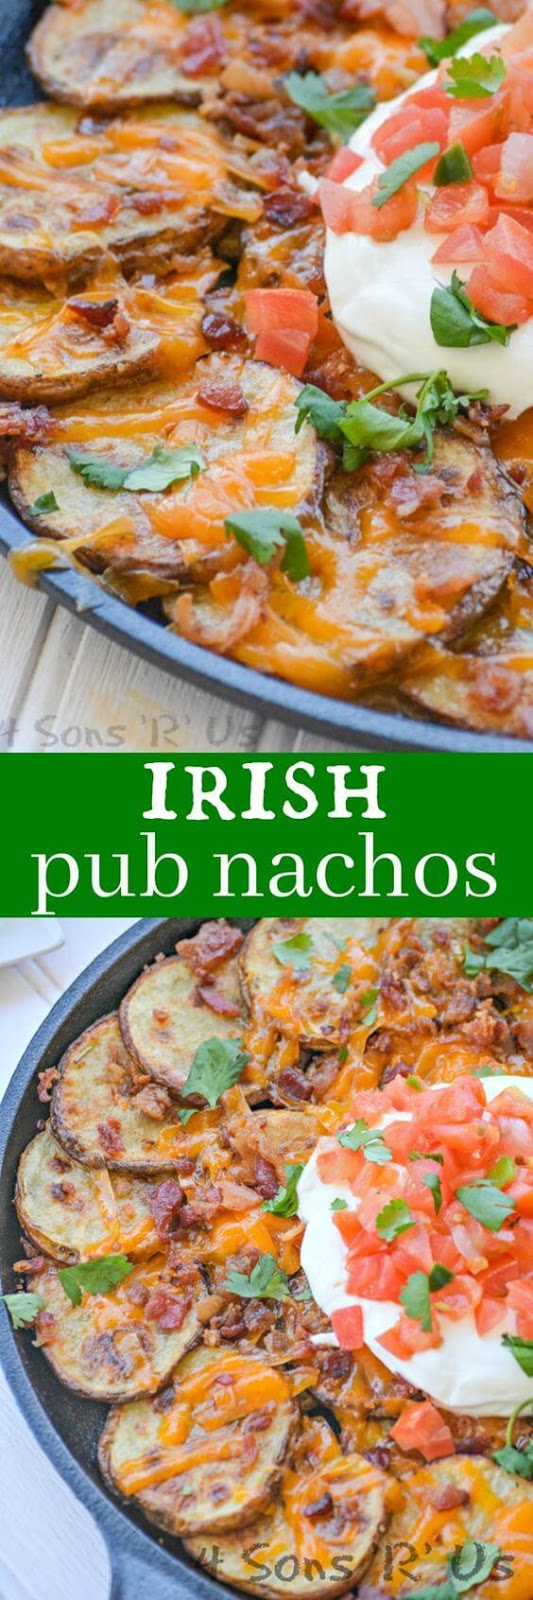 Irish Pub Nachos